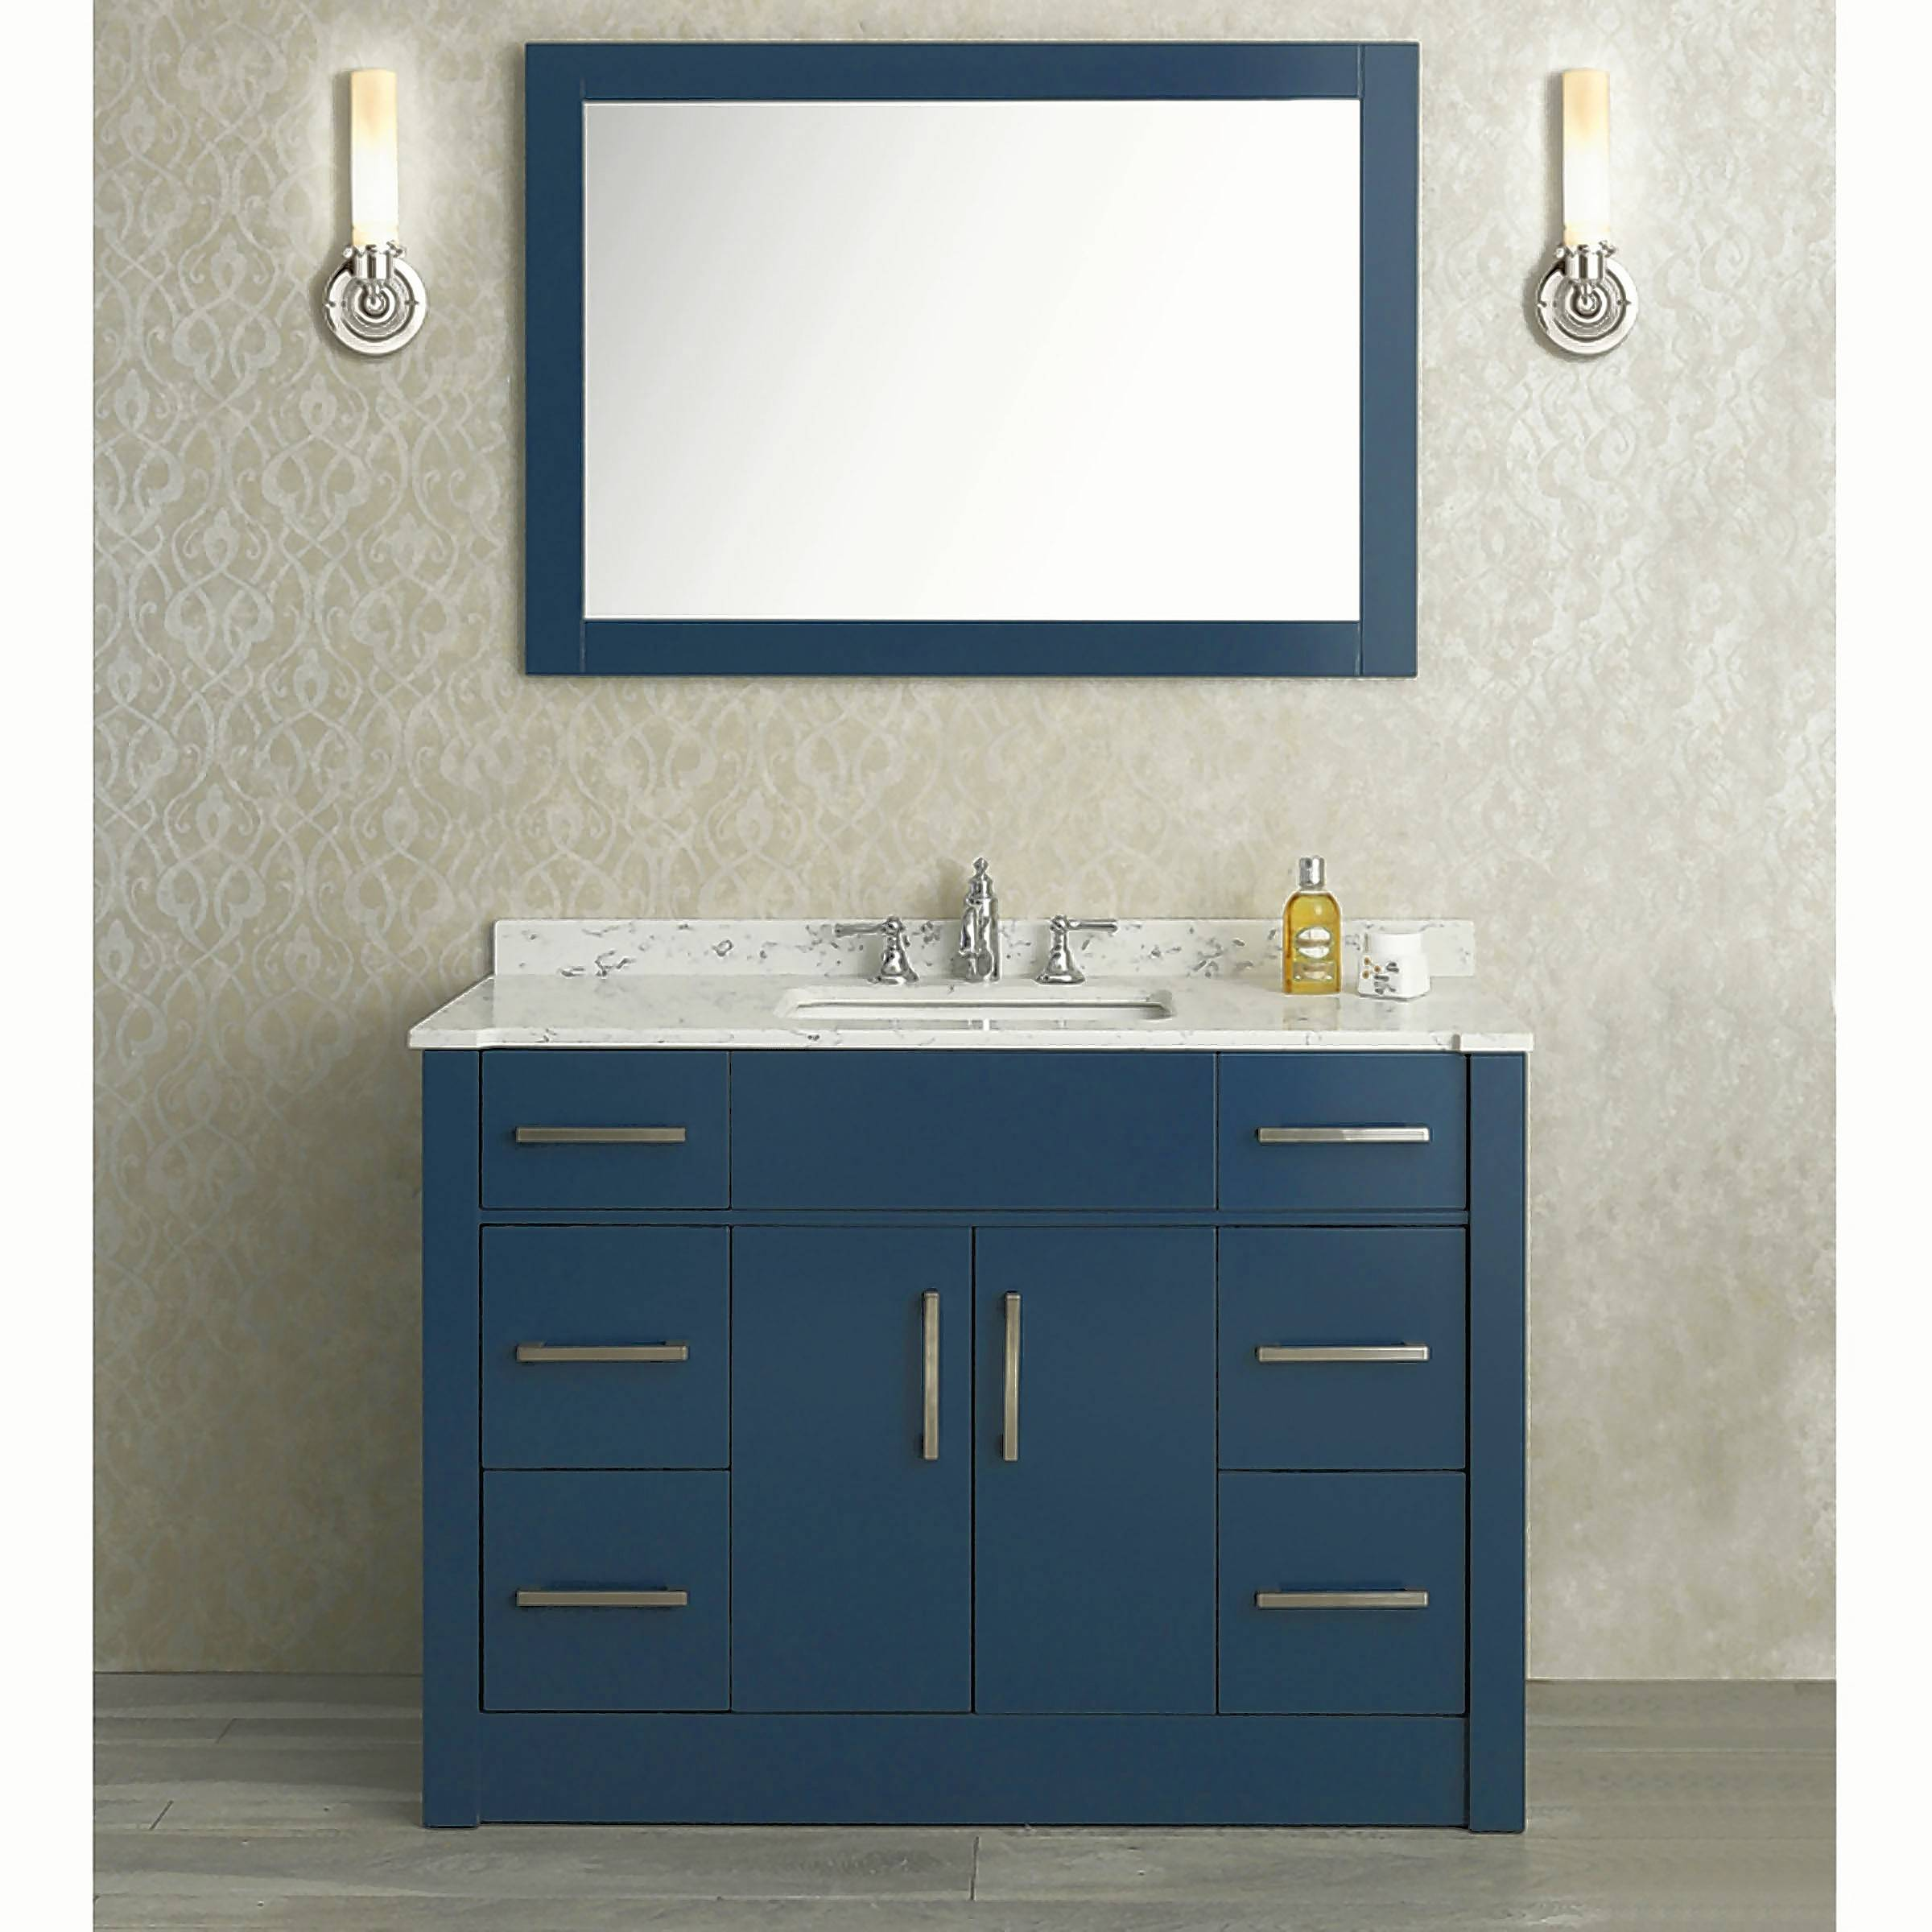 A midnight blue vanity from Ariel's Radcliff collection is inspired by Neo-New England traditional styling with a modern twist.